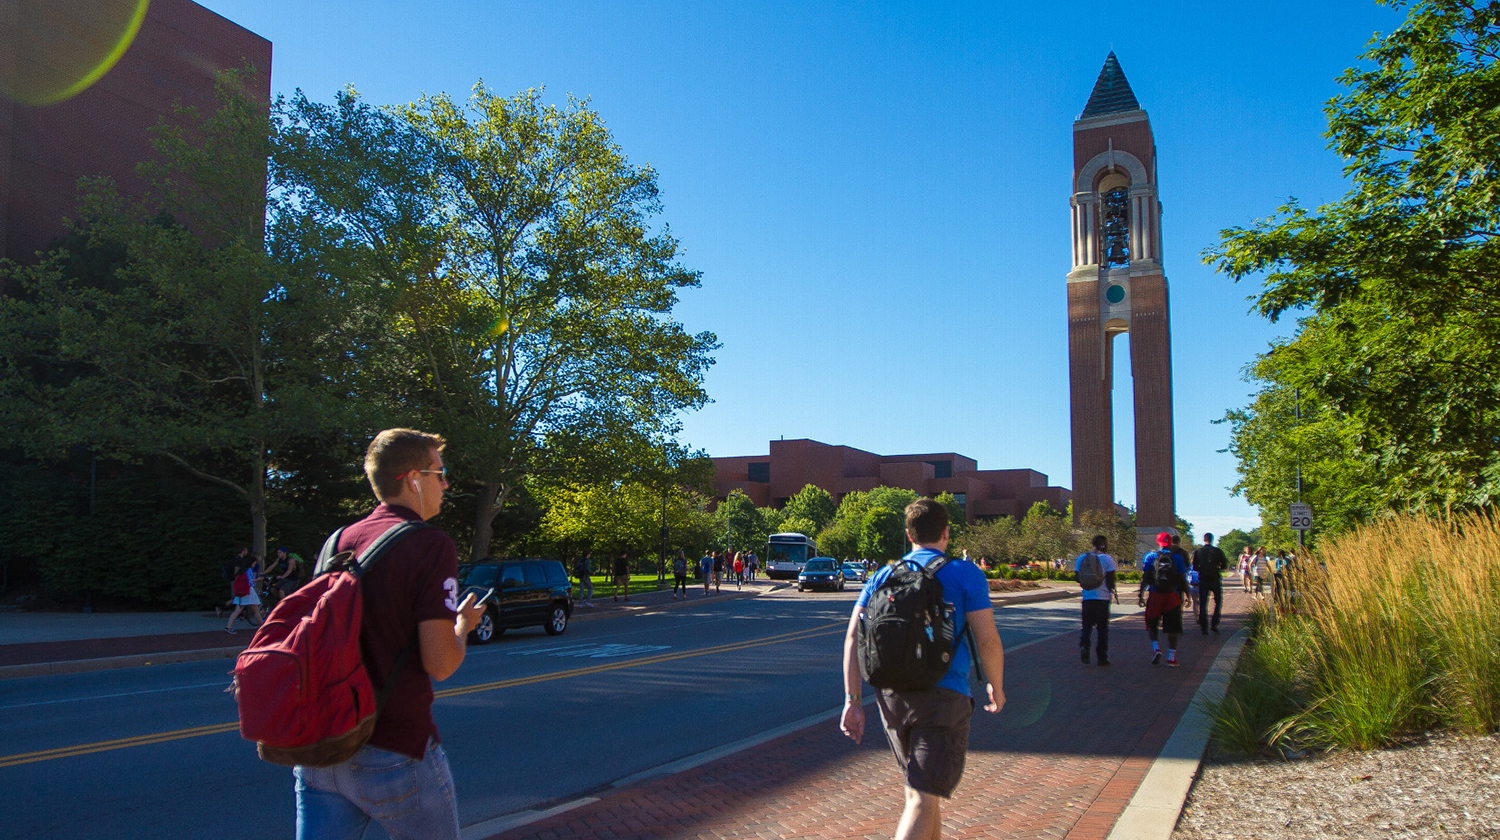 Students walking on campus near the bell tower.